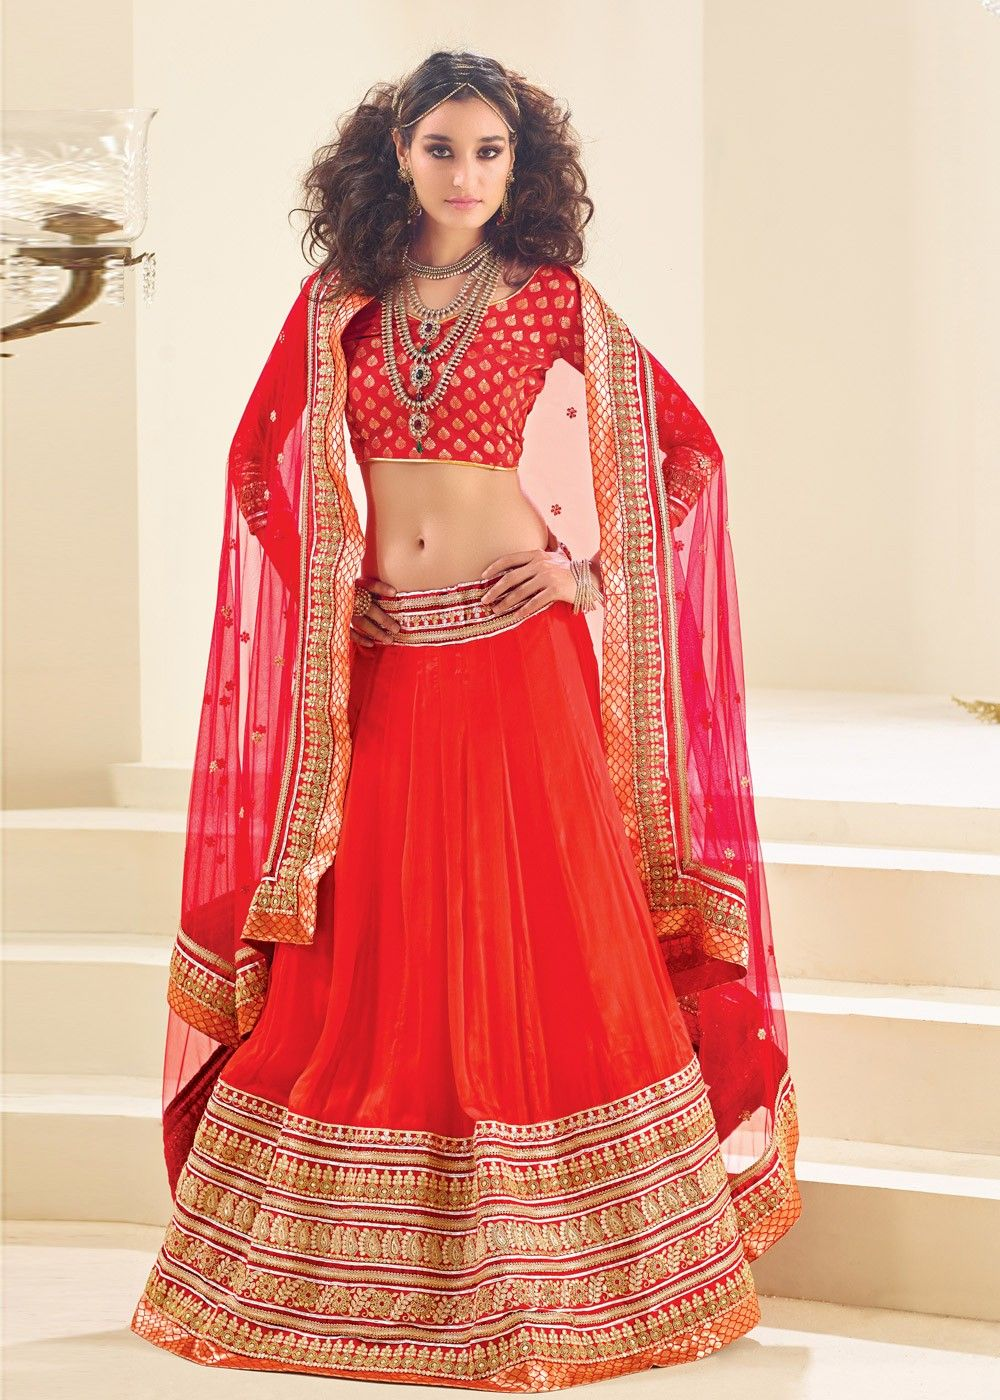 8a82dcd0cd8 These Blood Red Bridal Lehenga Images Will Make You Say Wow ...